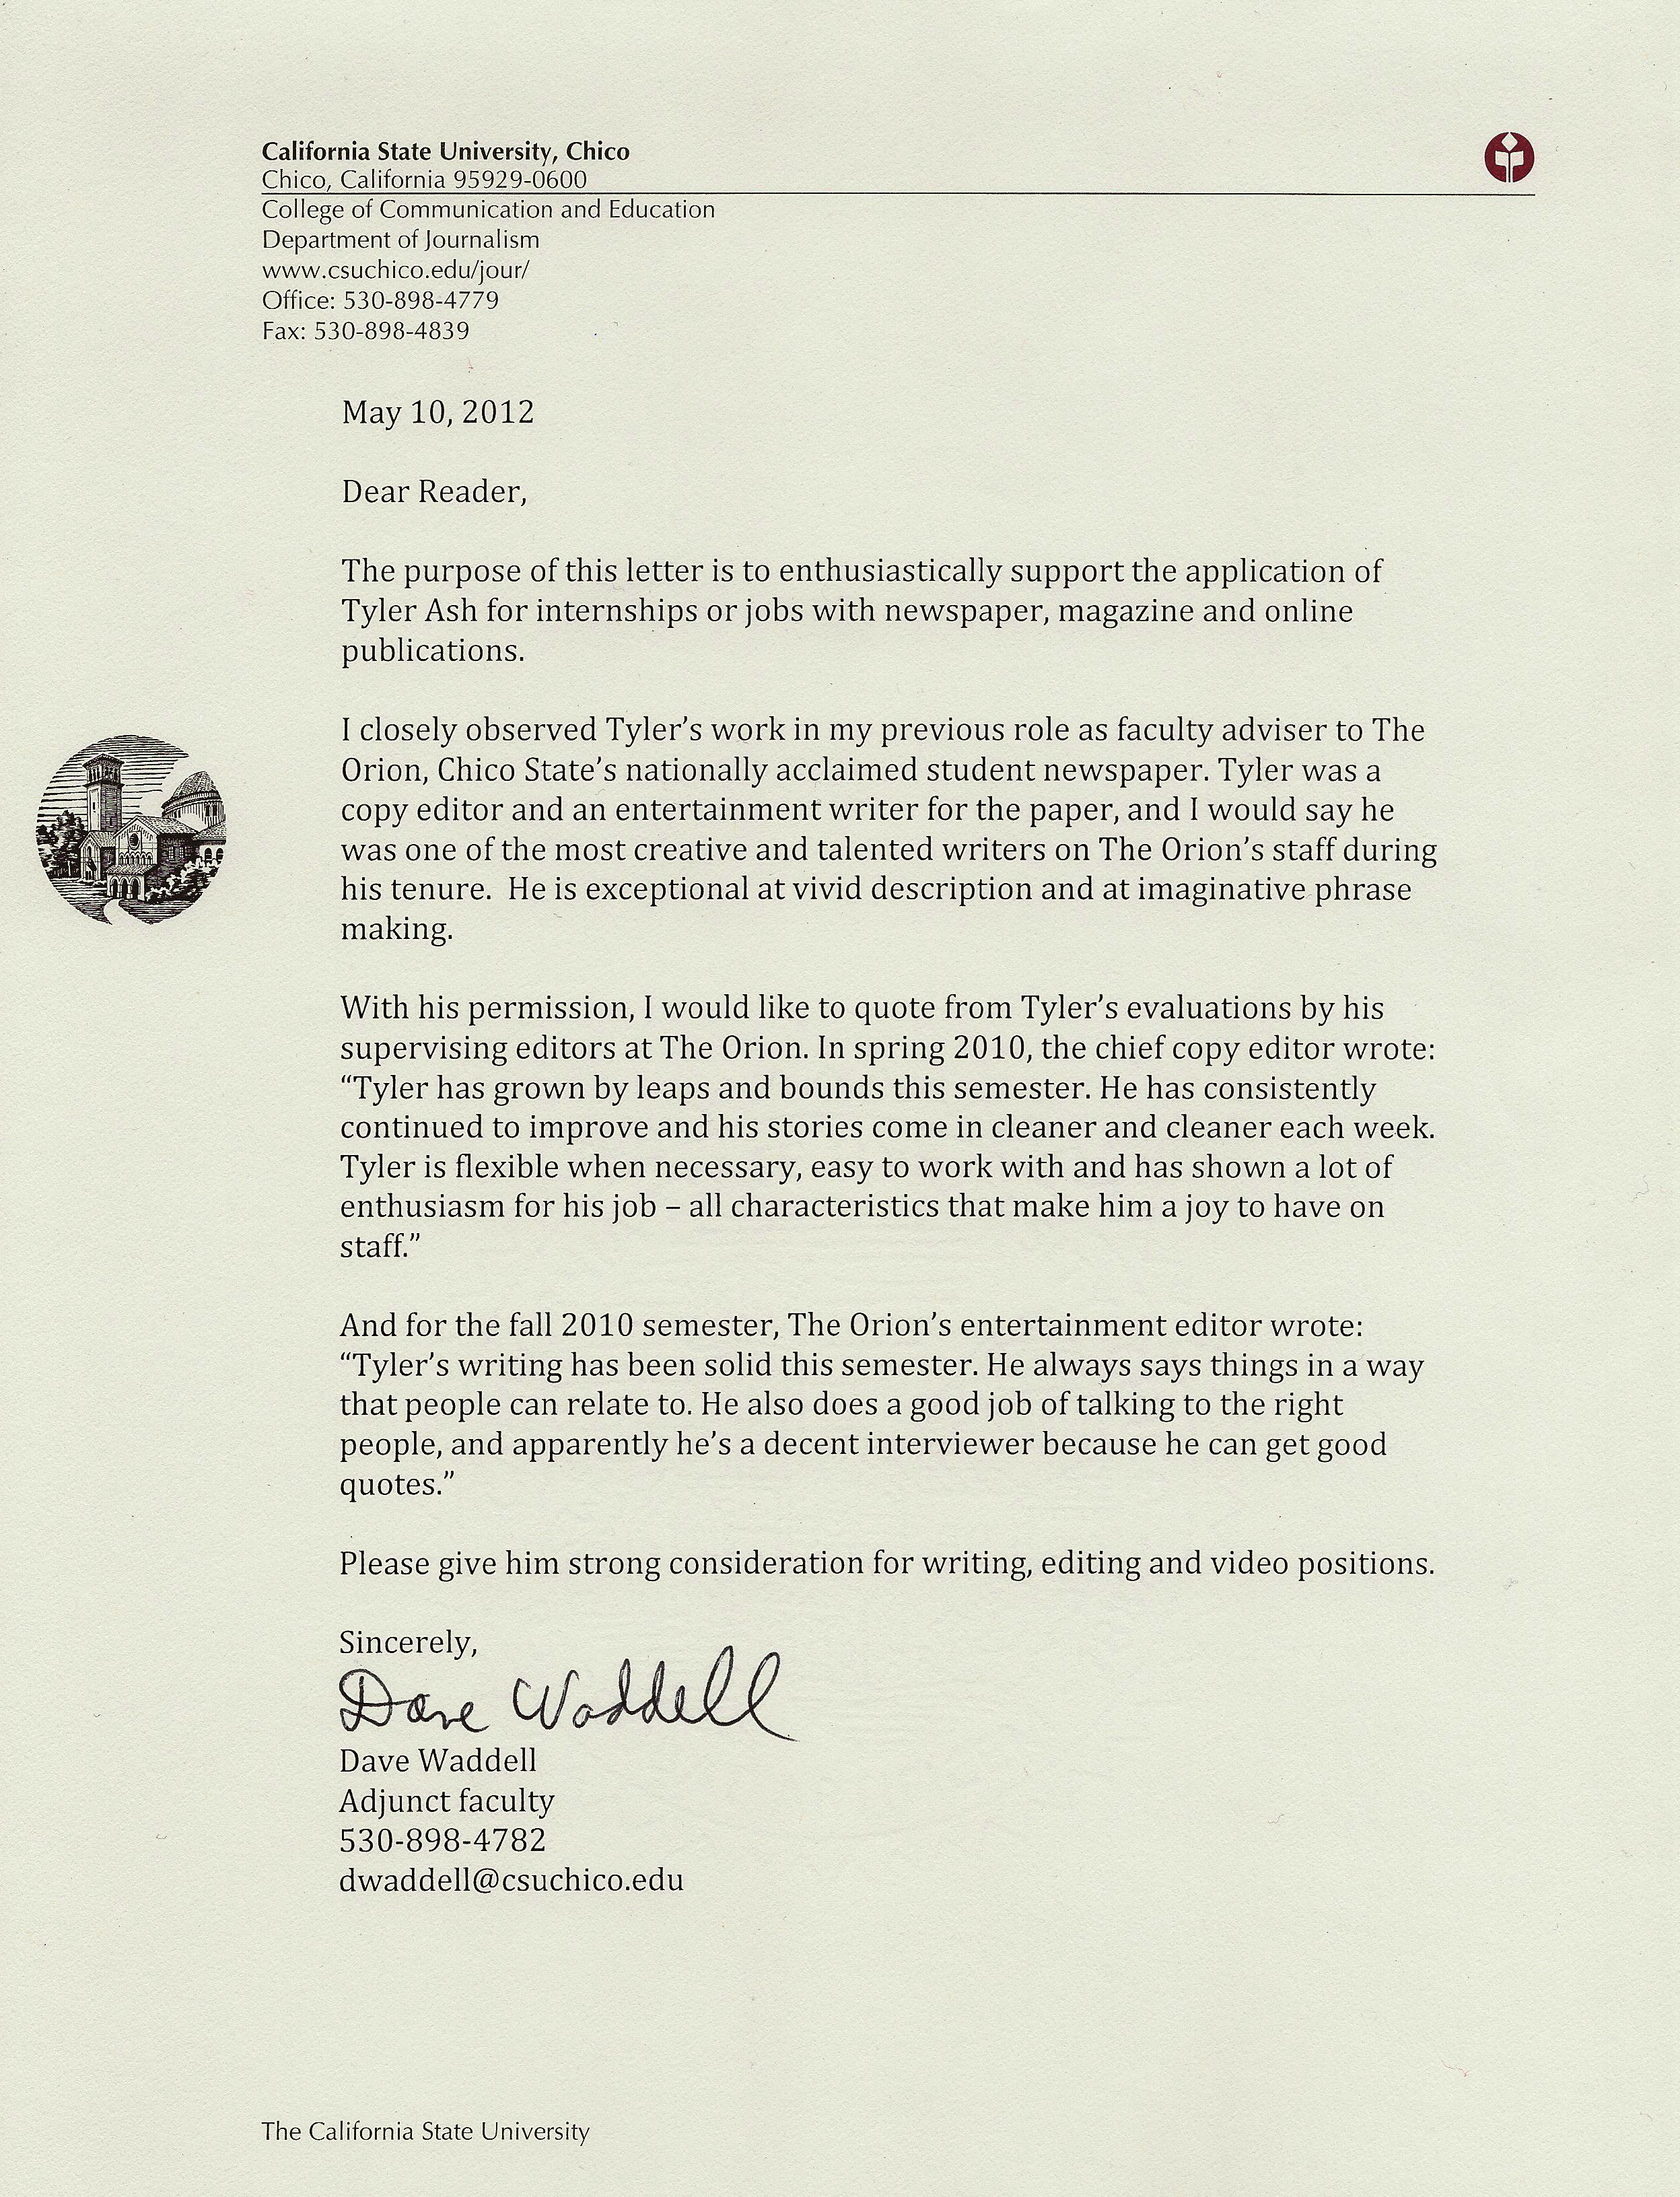 Sample Faculty Reference Letter Letter Of Recommendation From Former Faculty Advisor Of